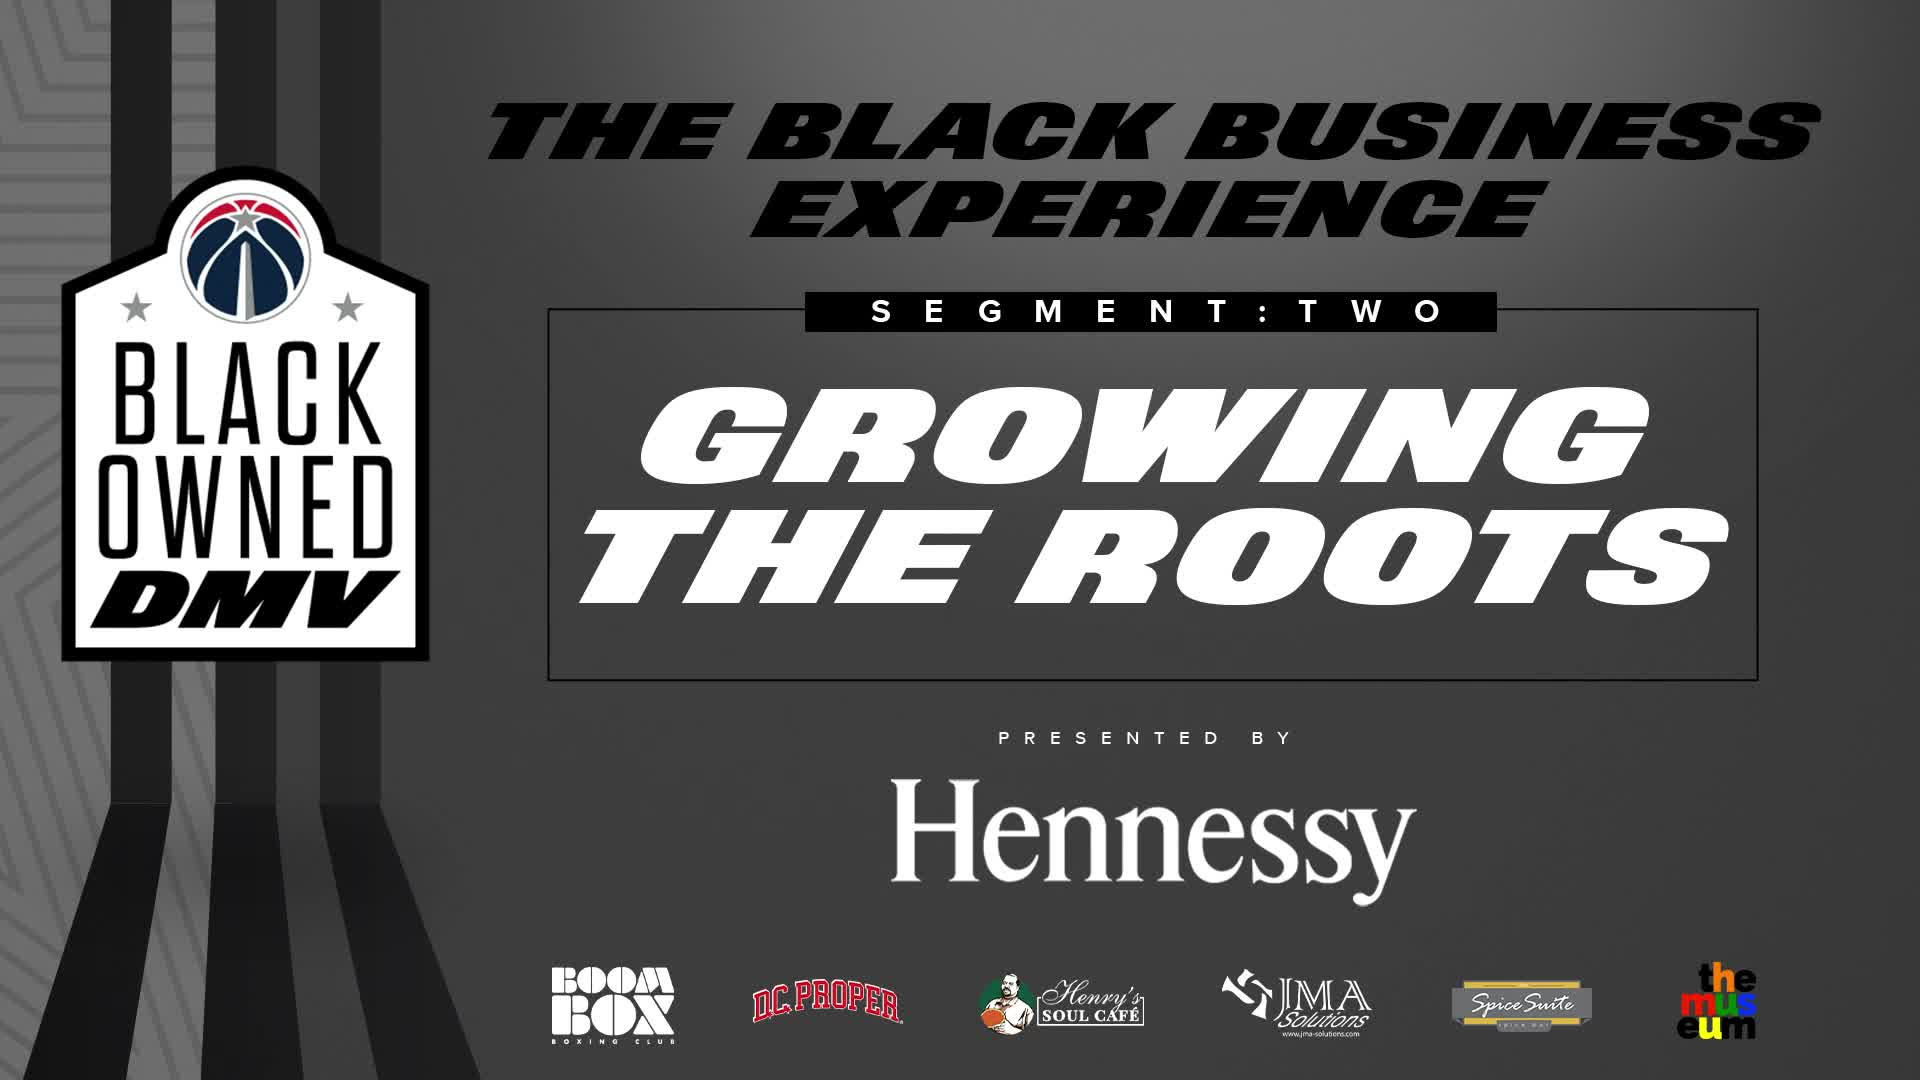 The Black Business Experience, Segment 2: Growing the Roots